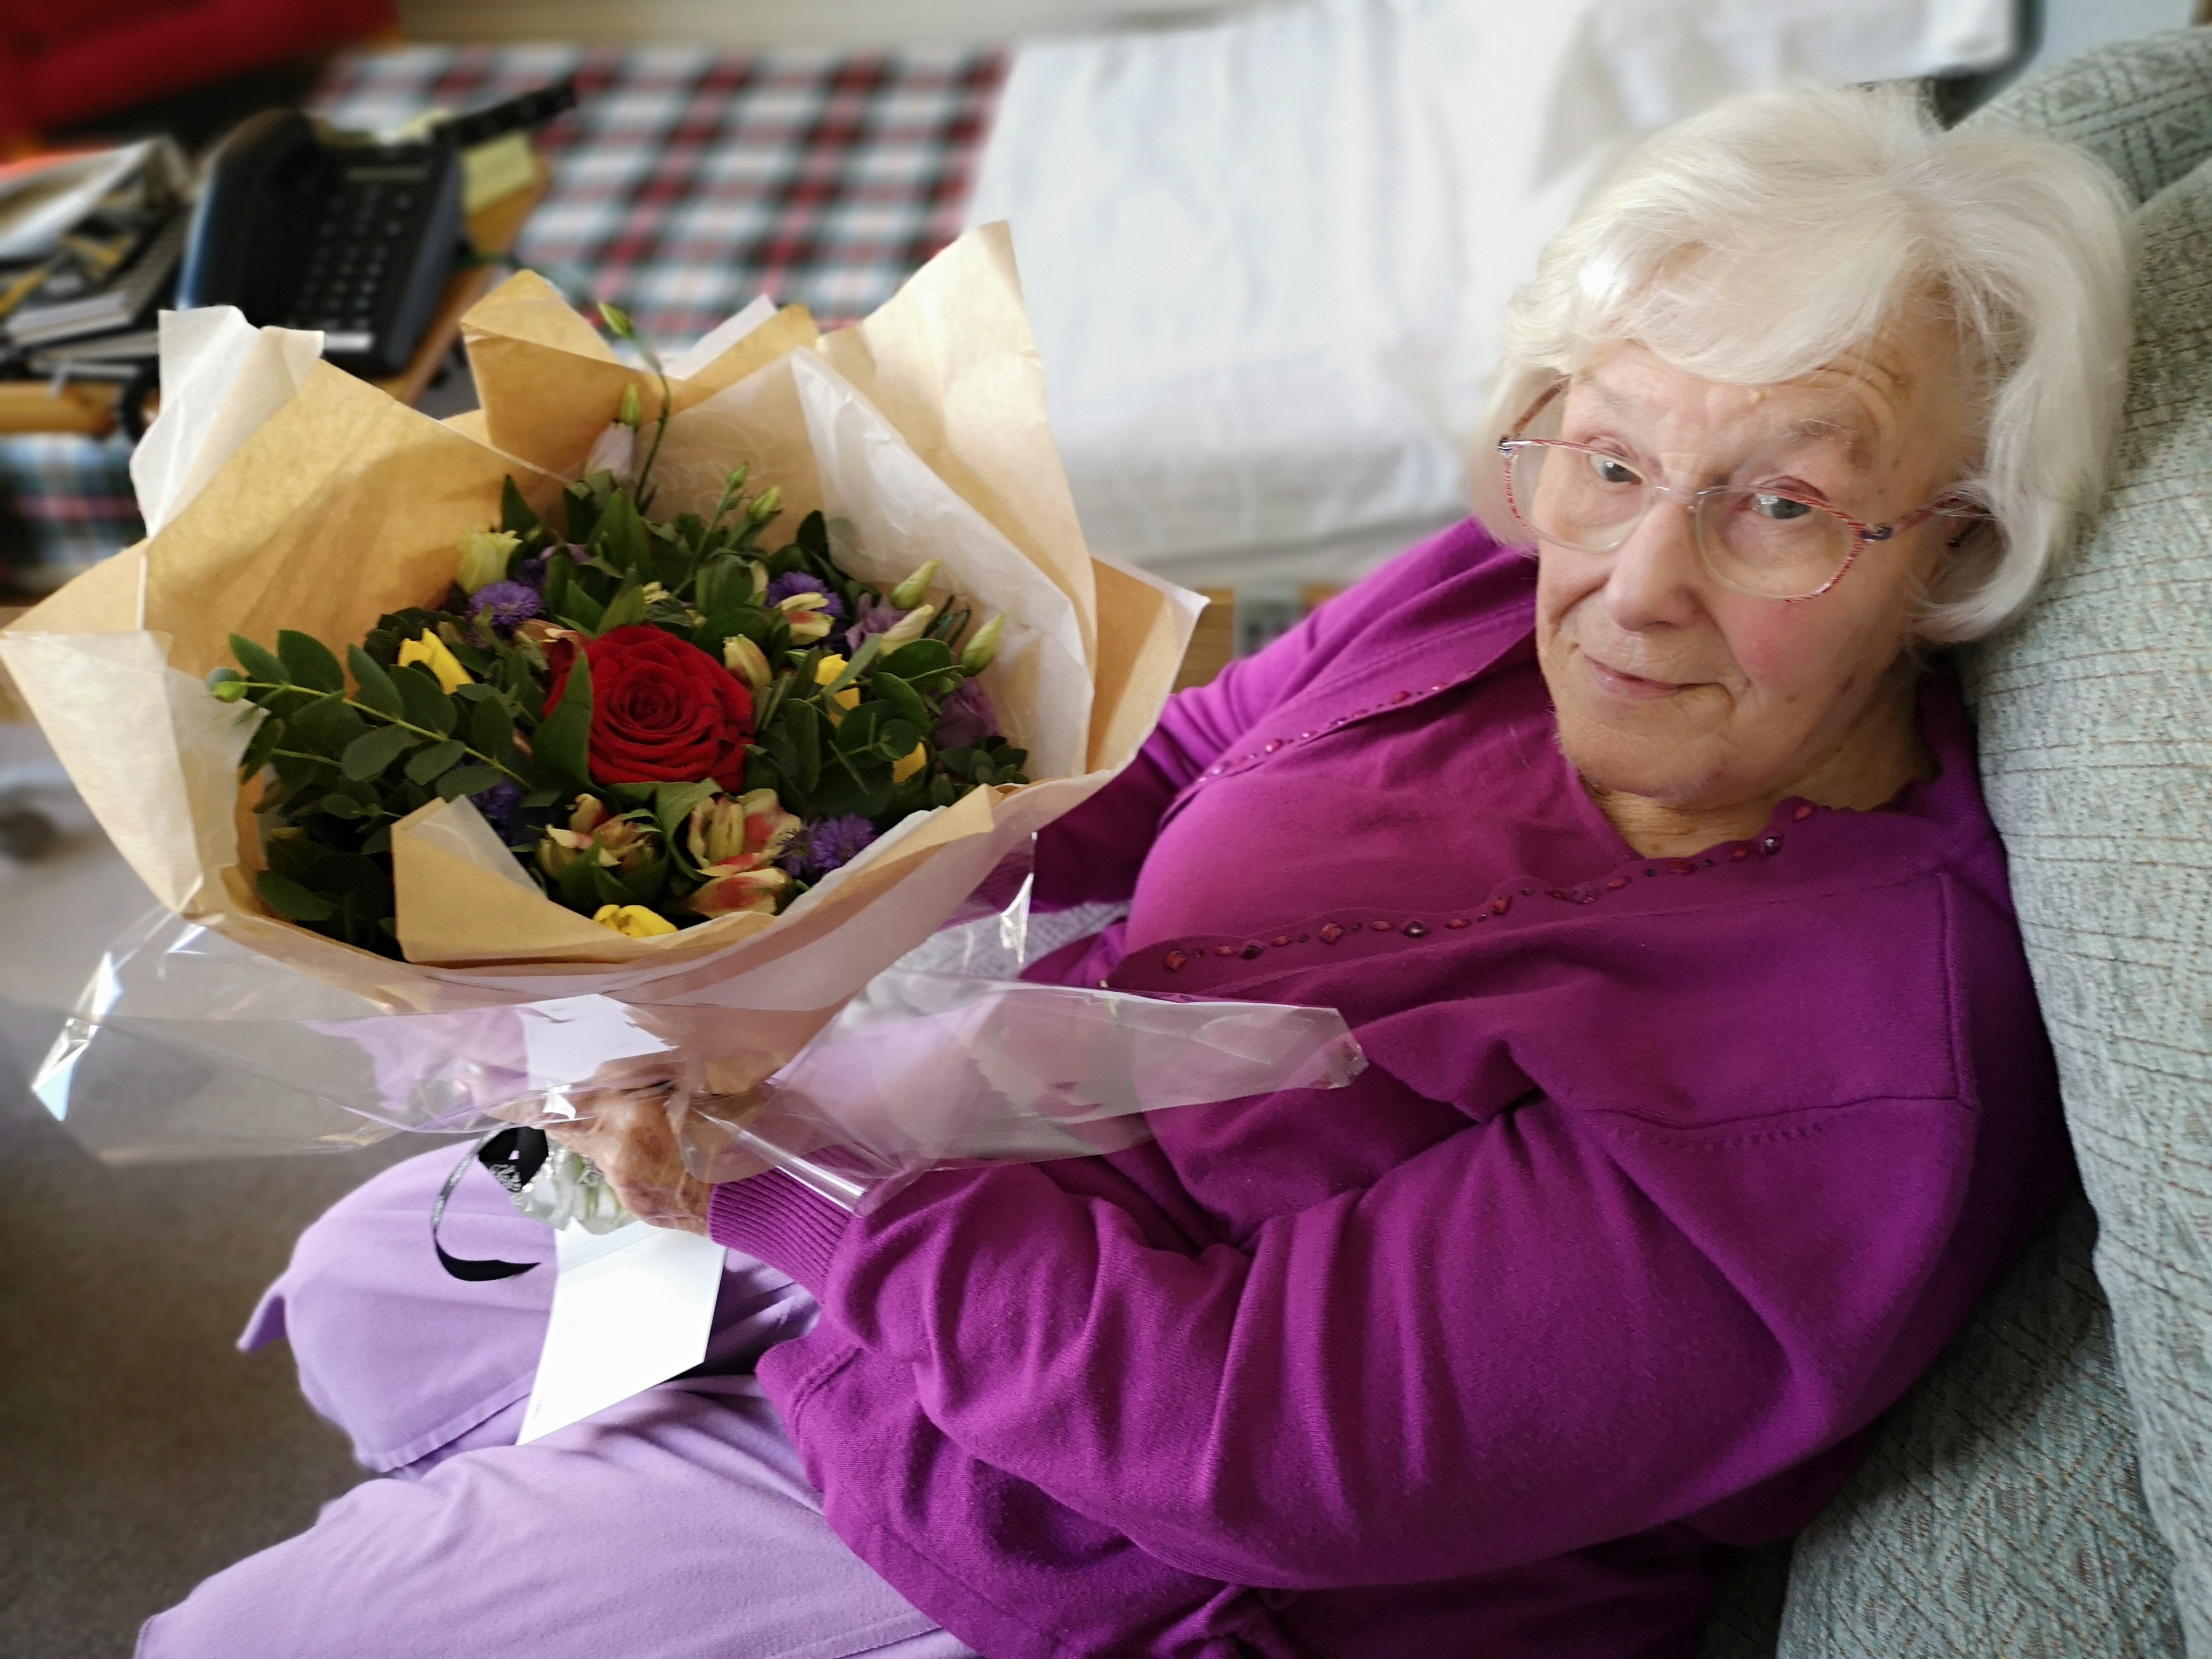 Picture Lady Pat - Received Flowers - Son  daughterin law - 8.12.20 (002)